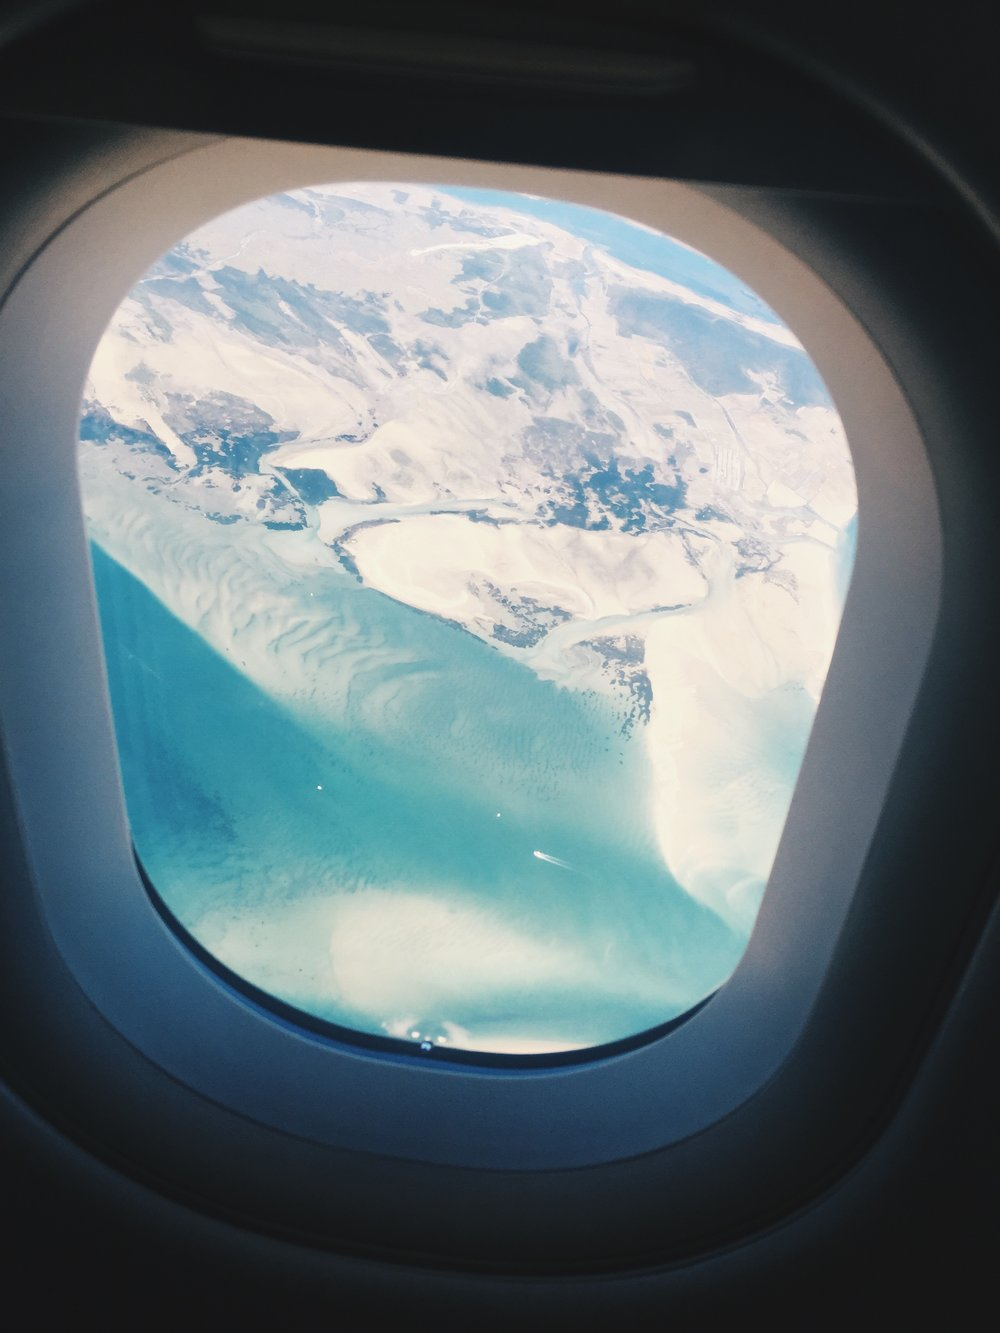 l mean....you already know its going to be amazing when this is what you see from the airplane.